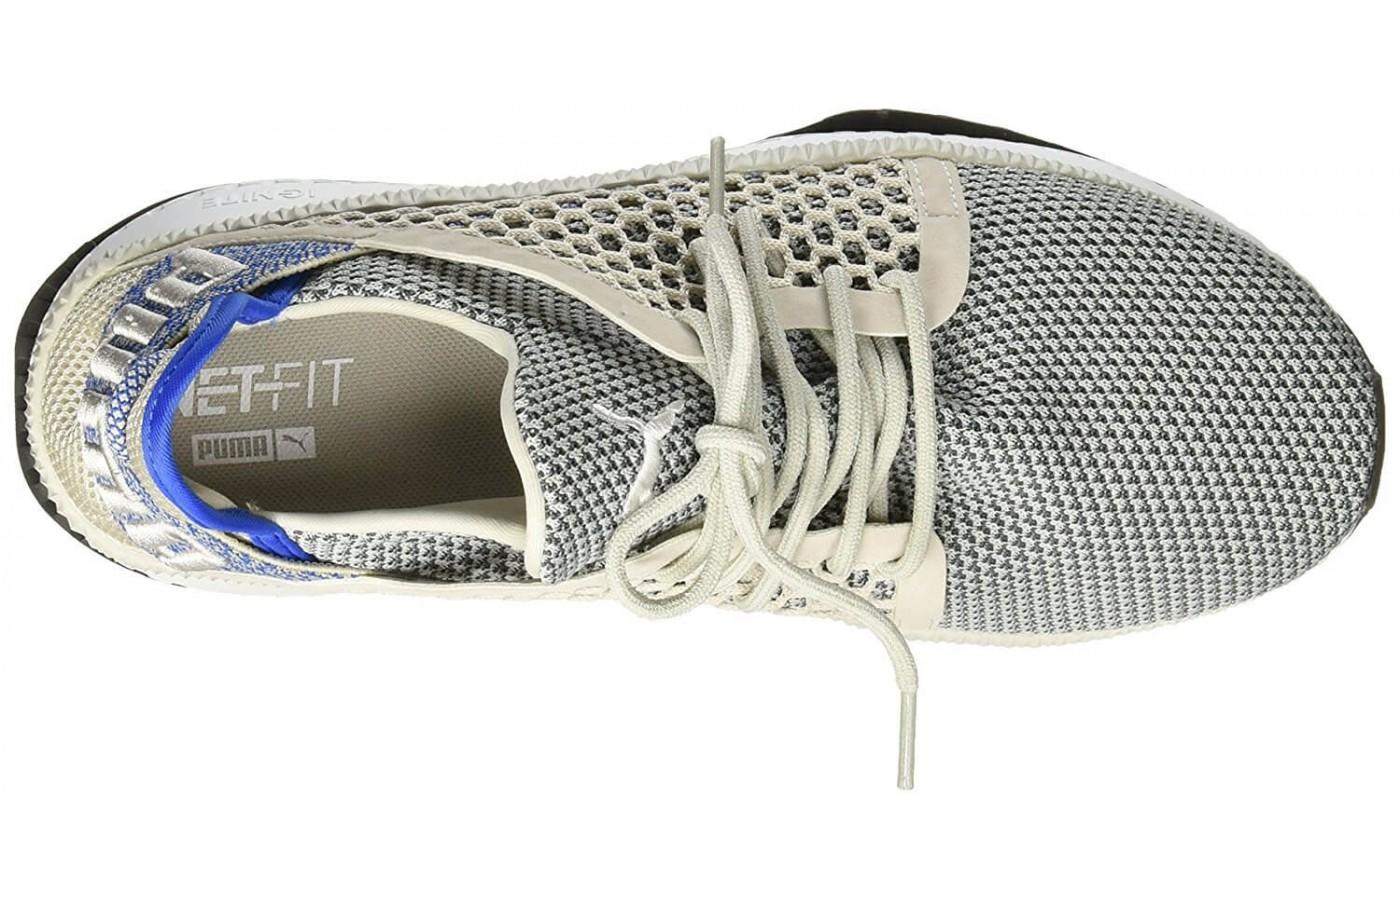 Runners commented that the breathabiliy of the shoe keeps the foot cool and dry.